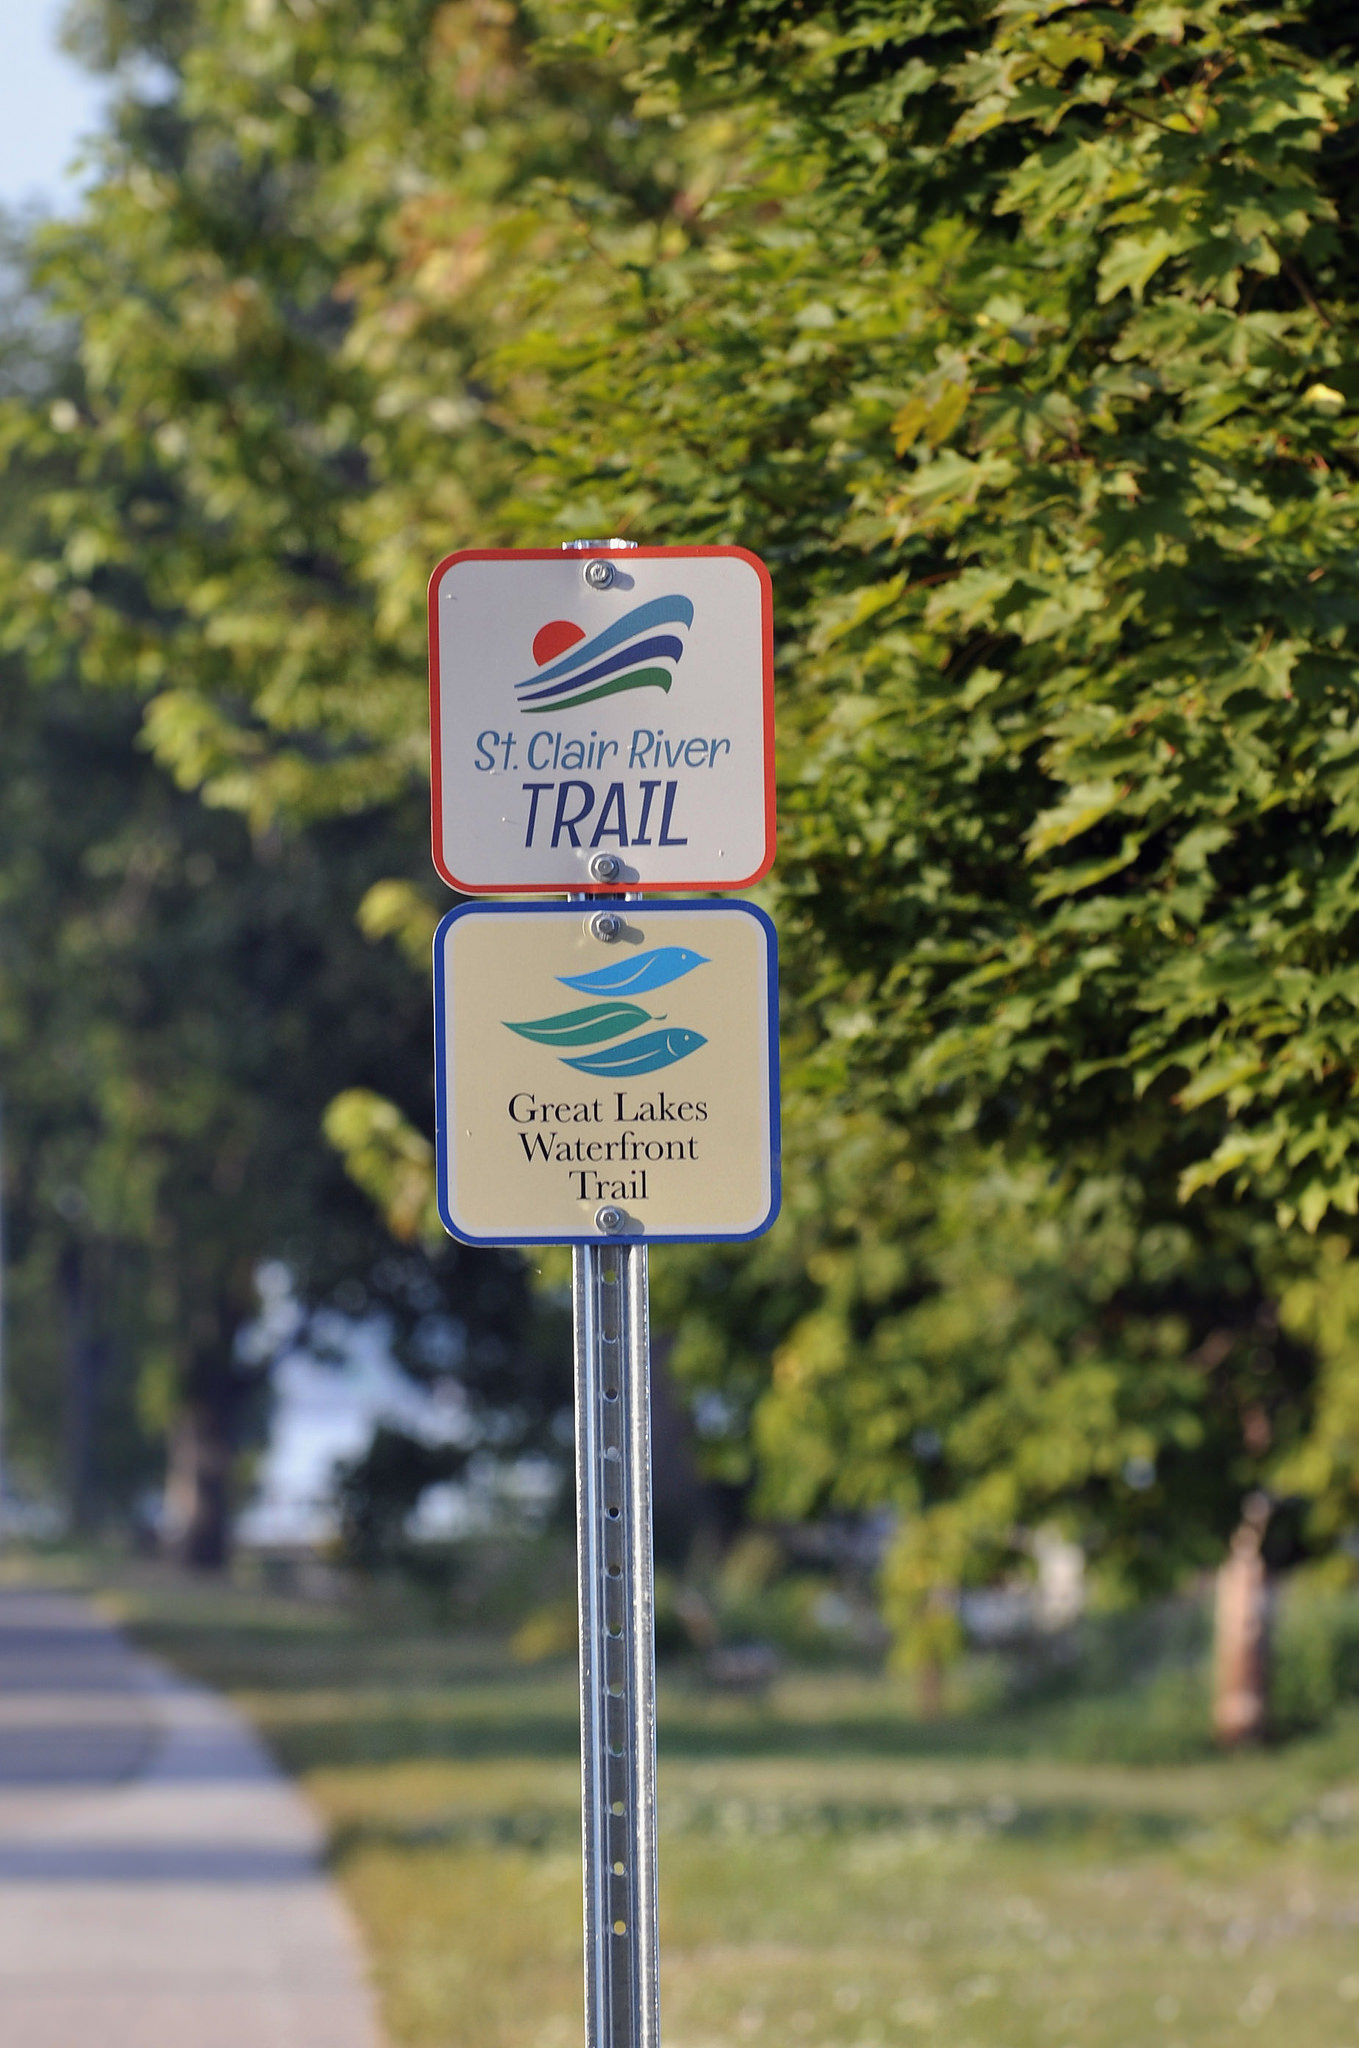 St. Clair River Bike Trail and Great Lakes Waterfront Trail signage